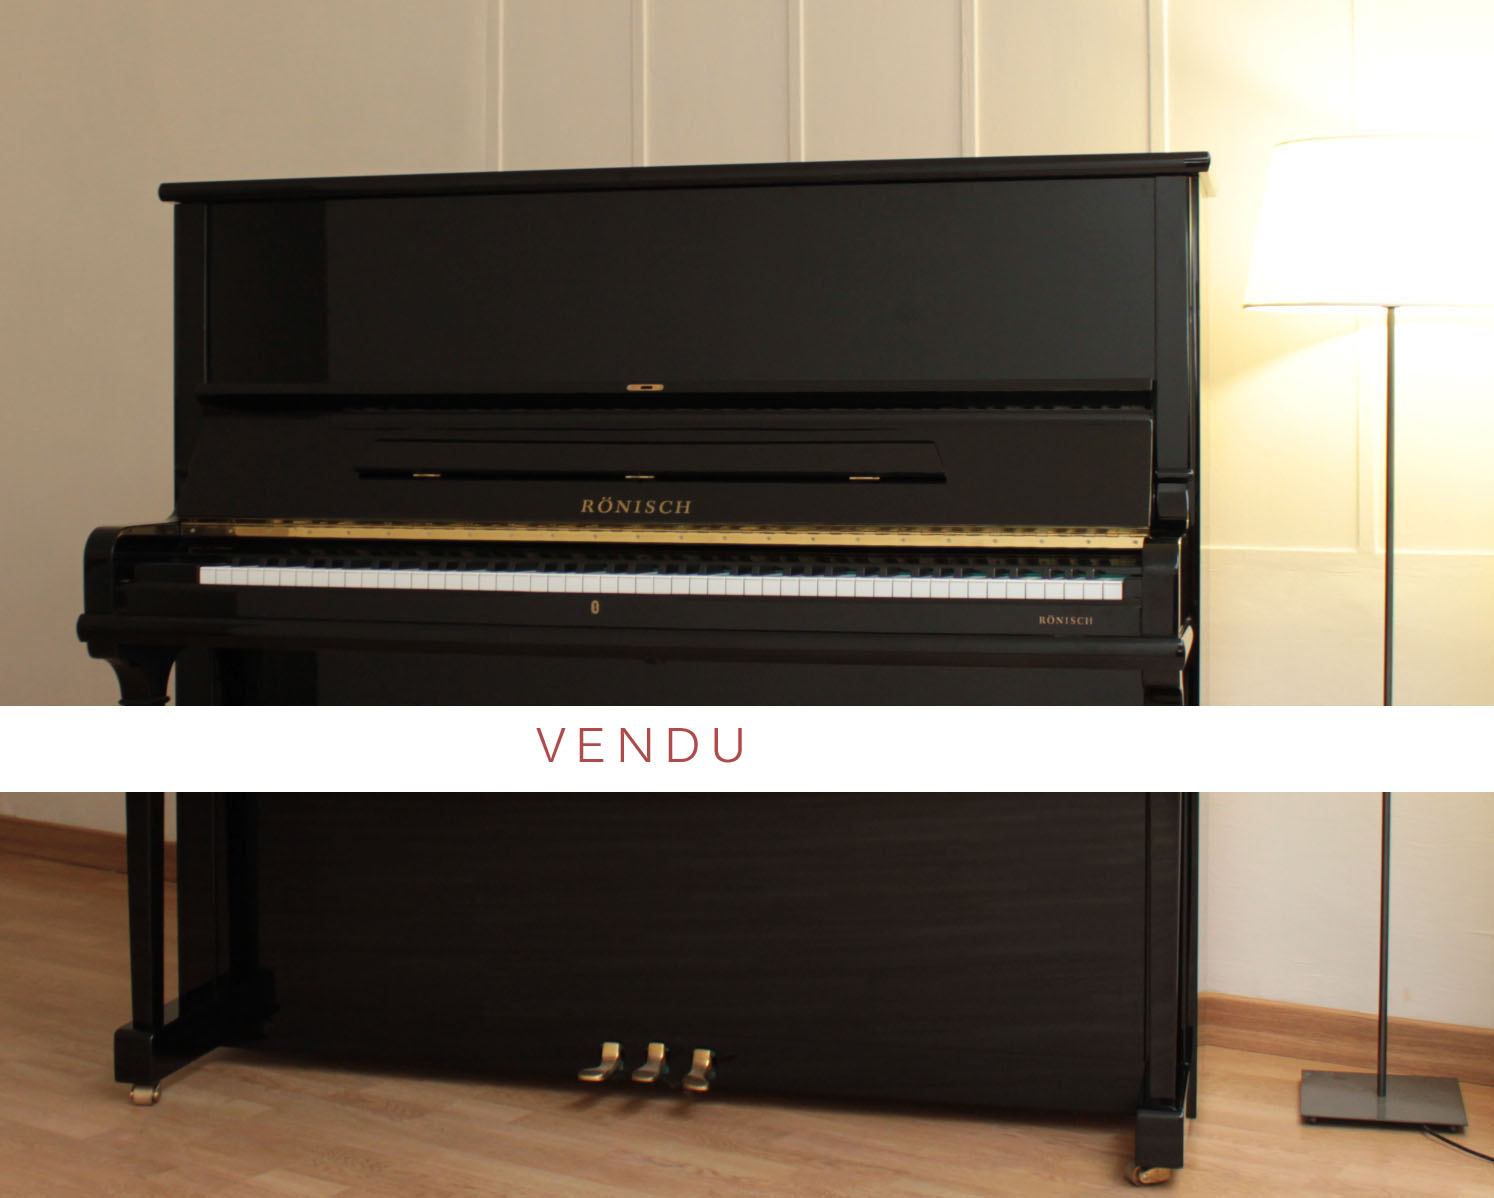 piano droit r nisch vente piano occasion achat et location de piano avignon accord de piano. Black Bedroom Furniture Sets. Home Design Ideas